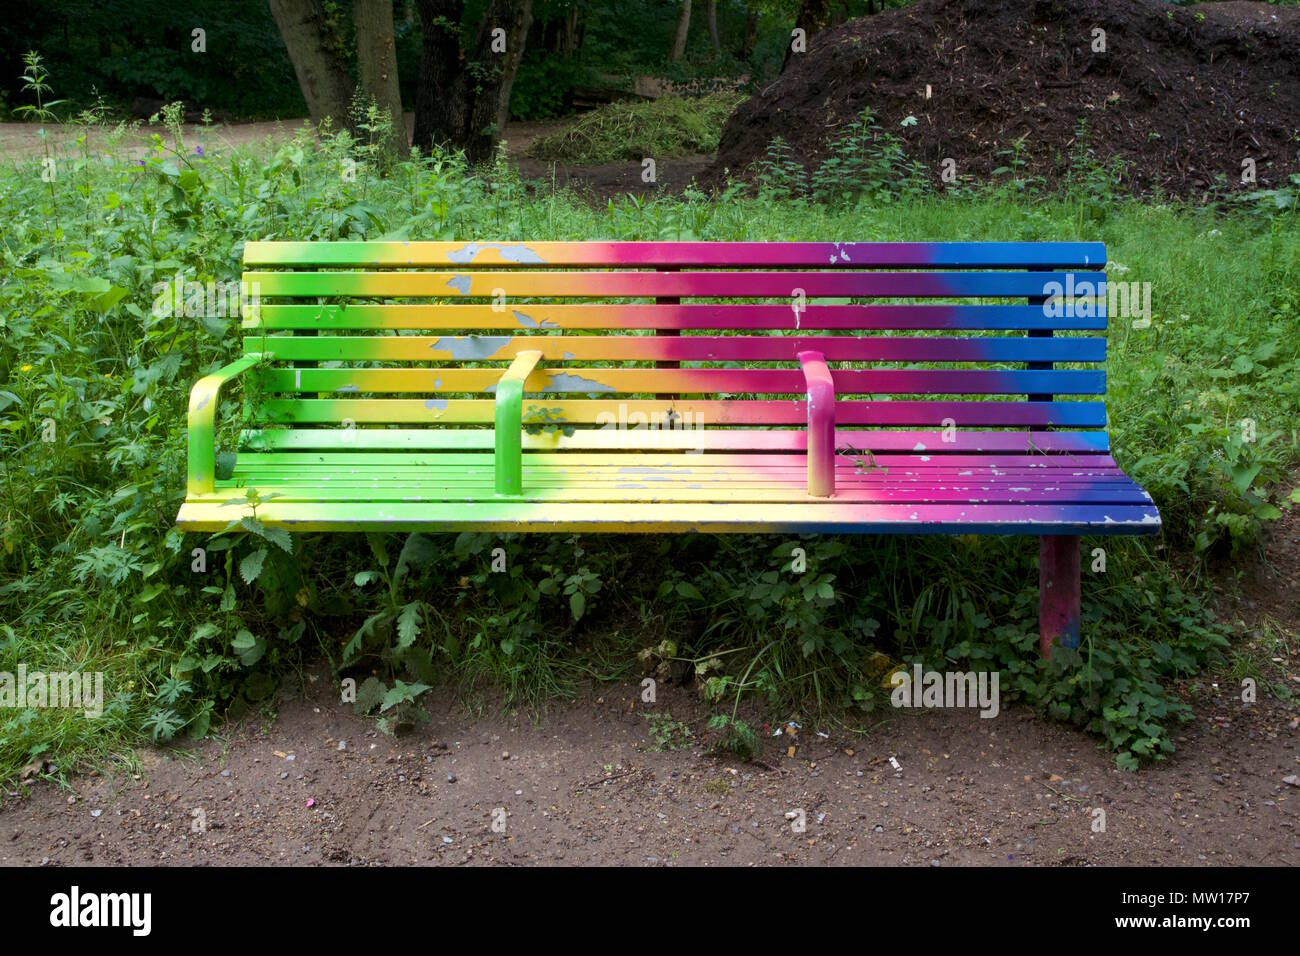 A rainbow coloured bench called Gradient Fade by Adham Faramawy in Tower Hamlets Cemetery Park - Stock Image